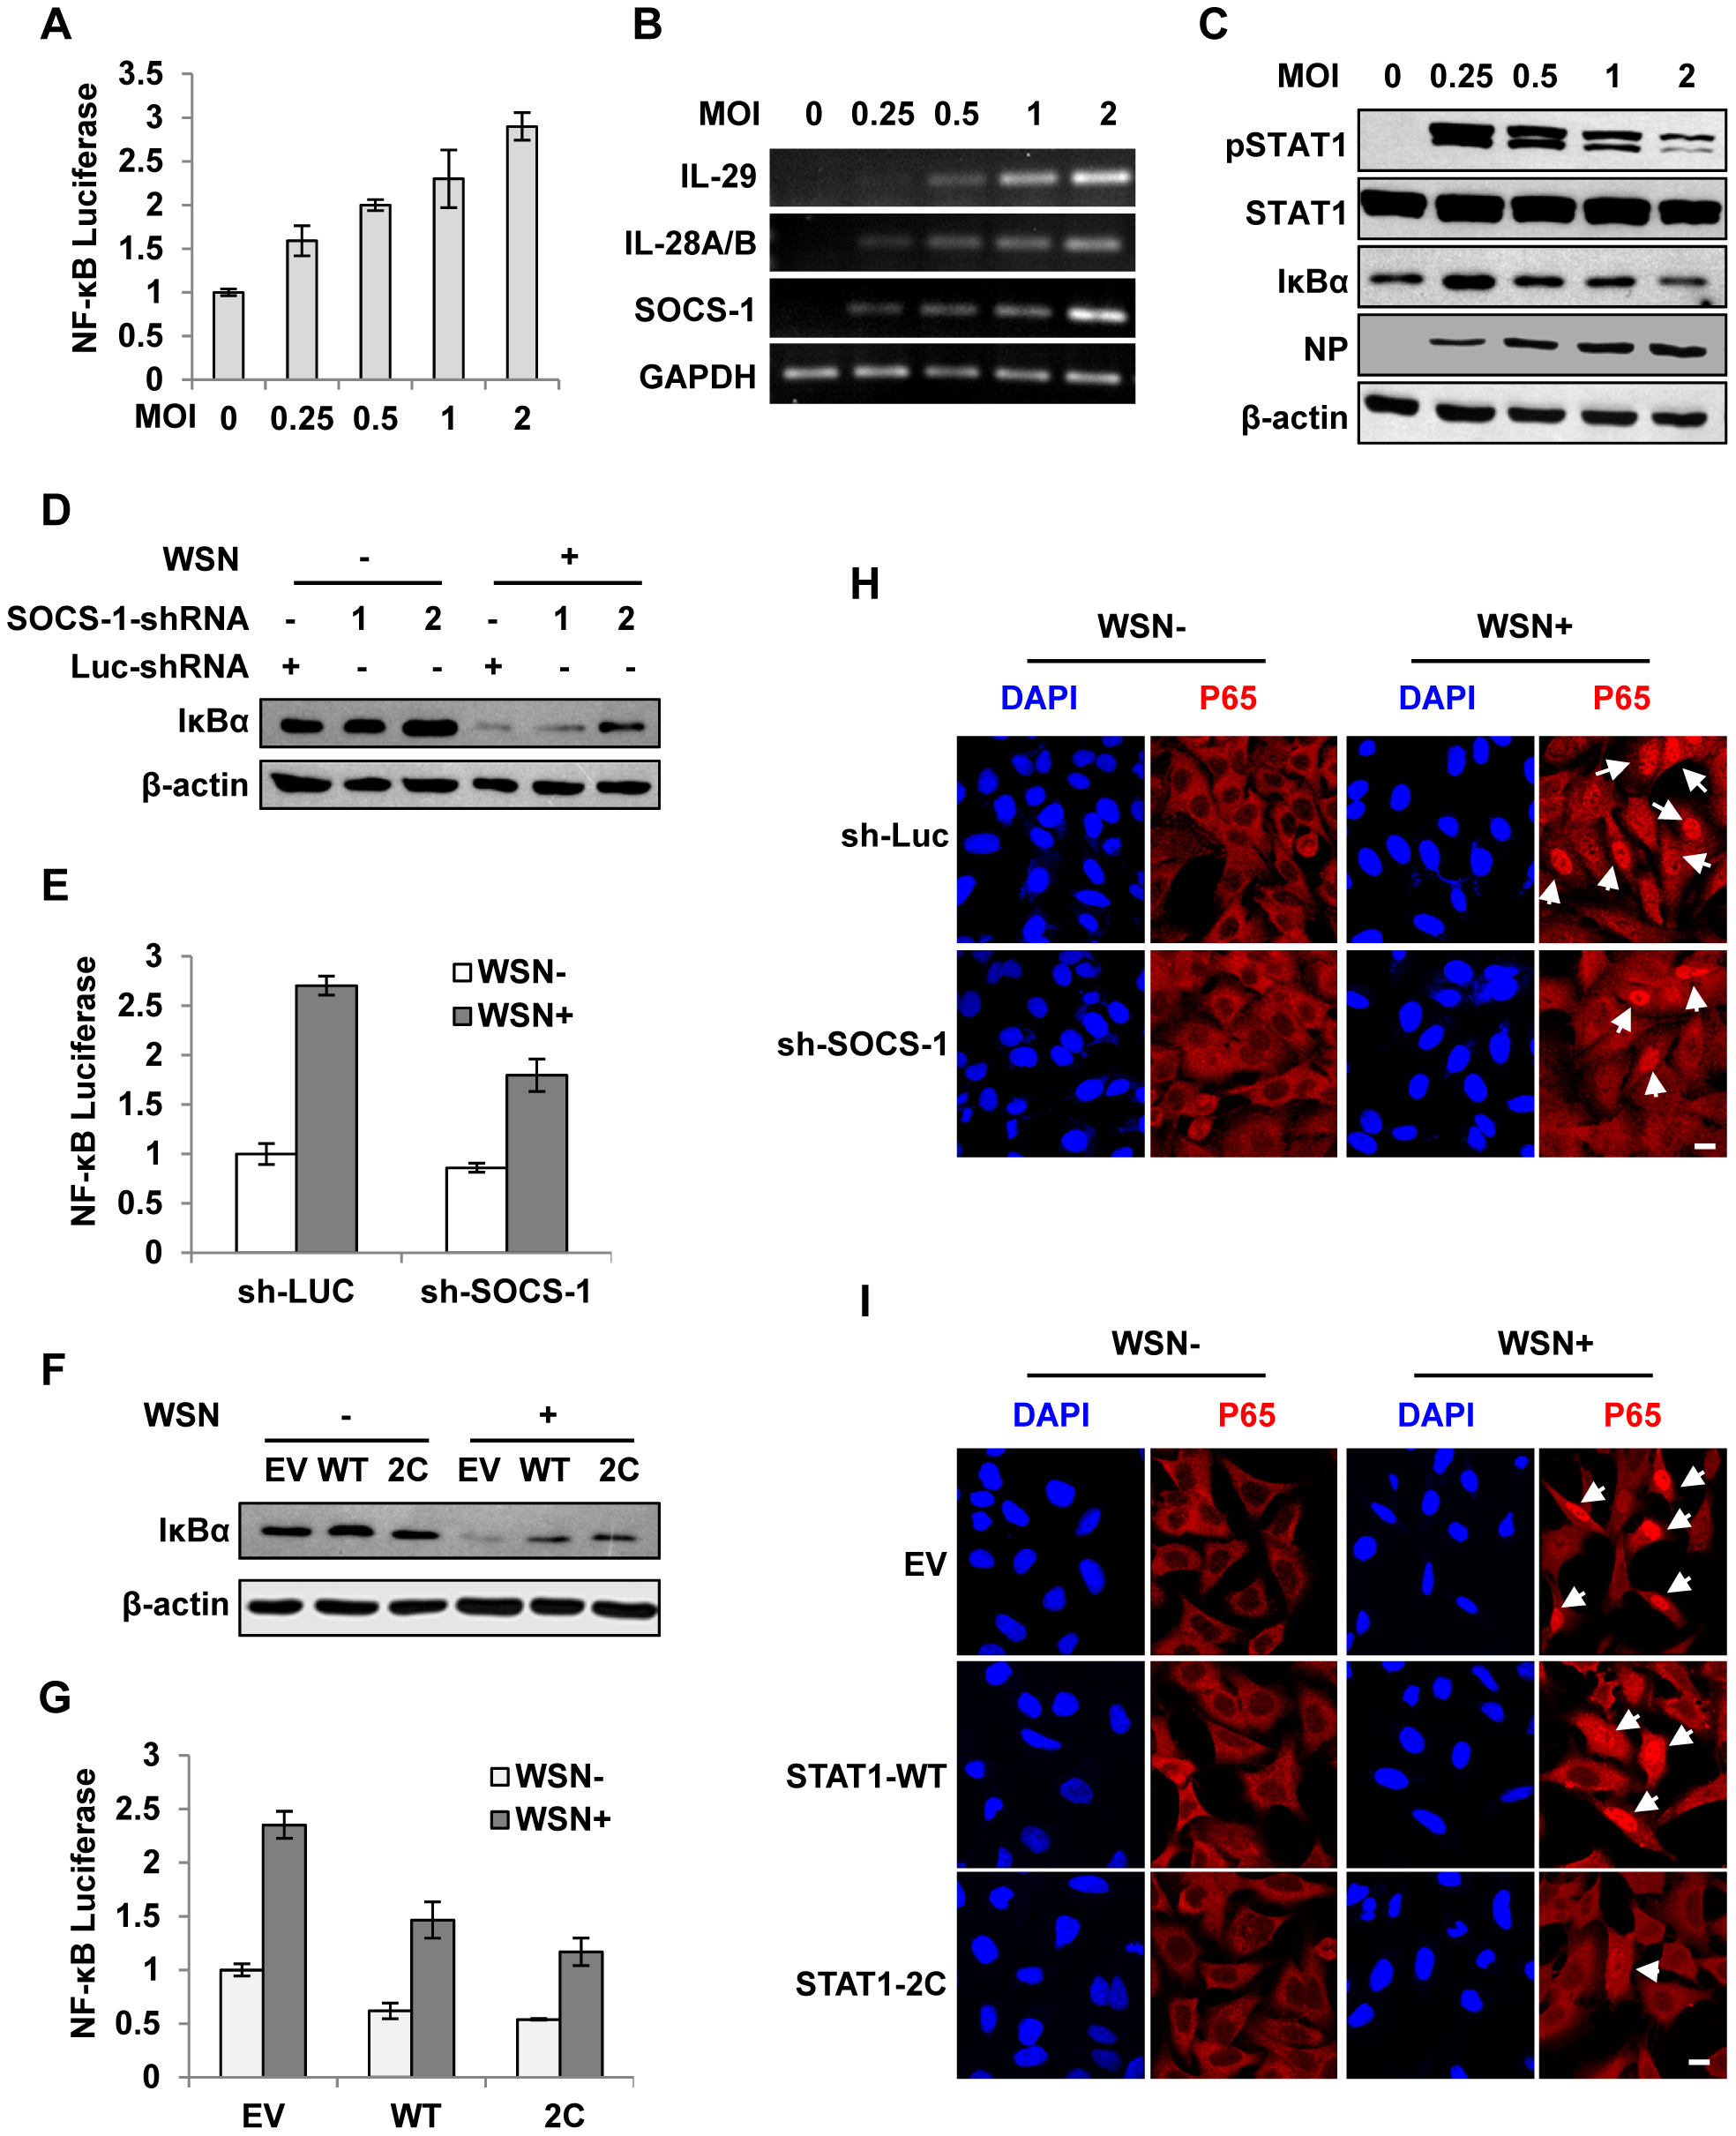 Disruption of cytokine signaling pathway results in robust activation of NF-κB during IAV infection.